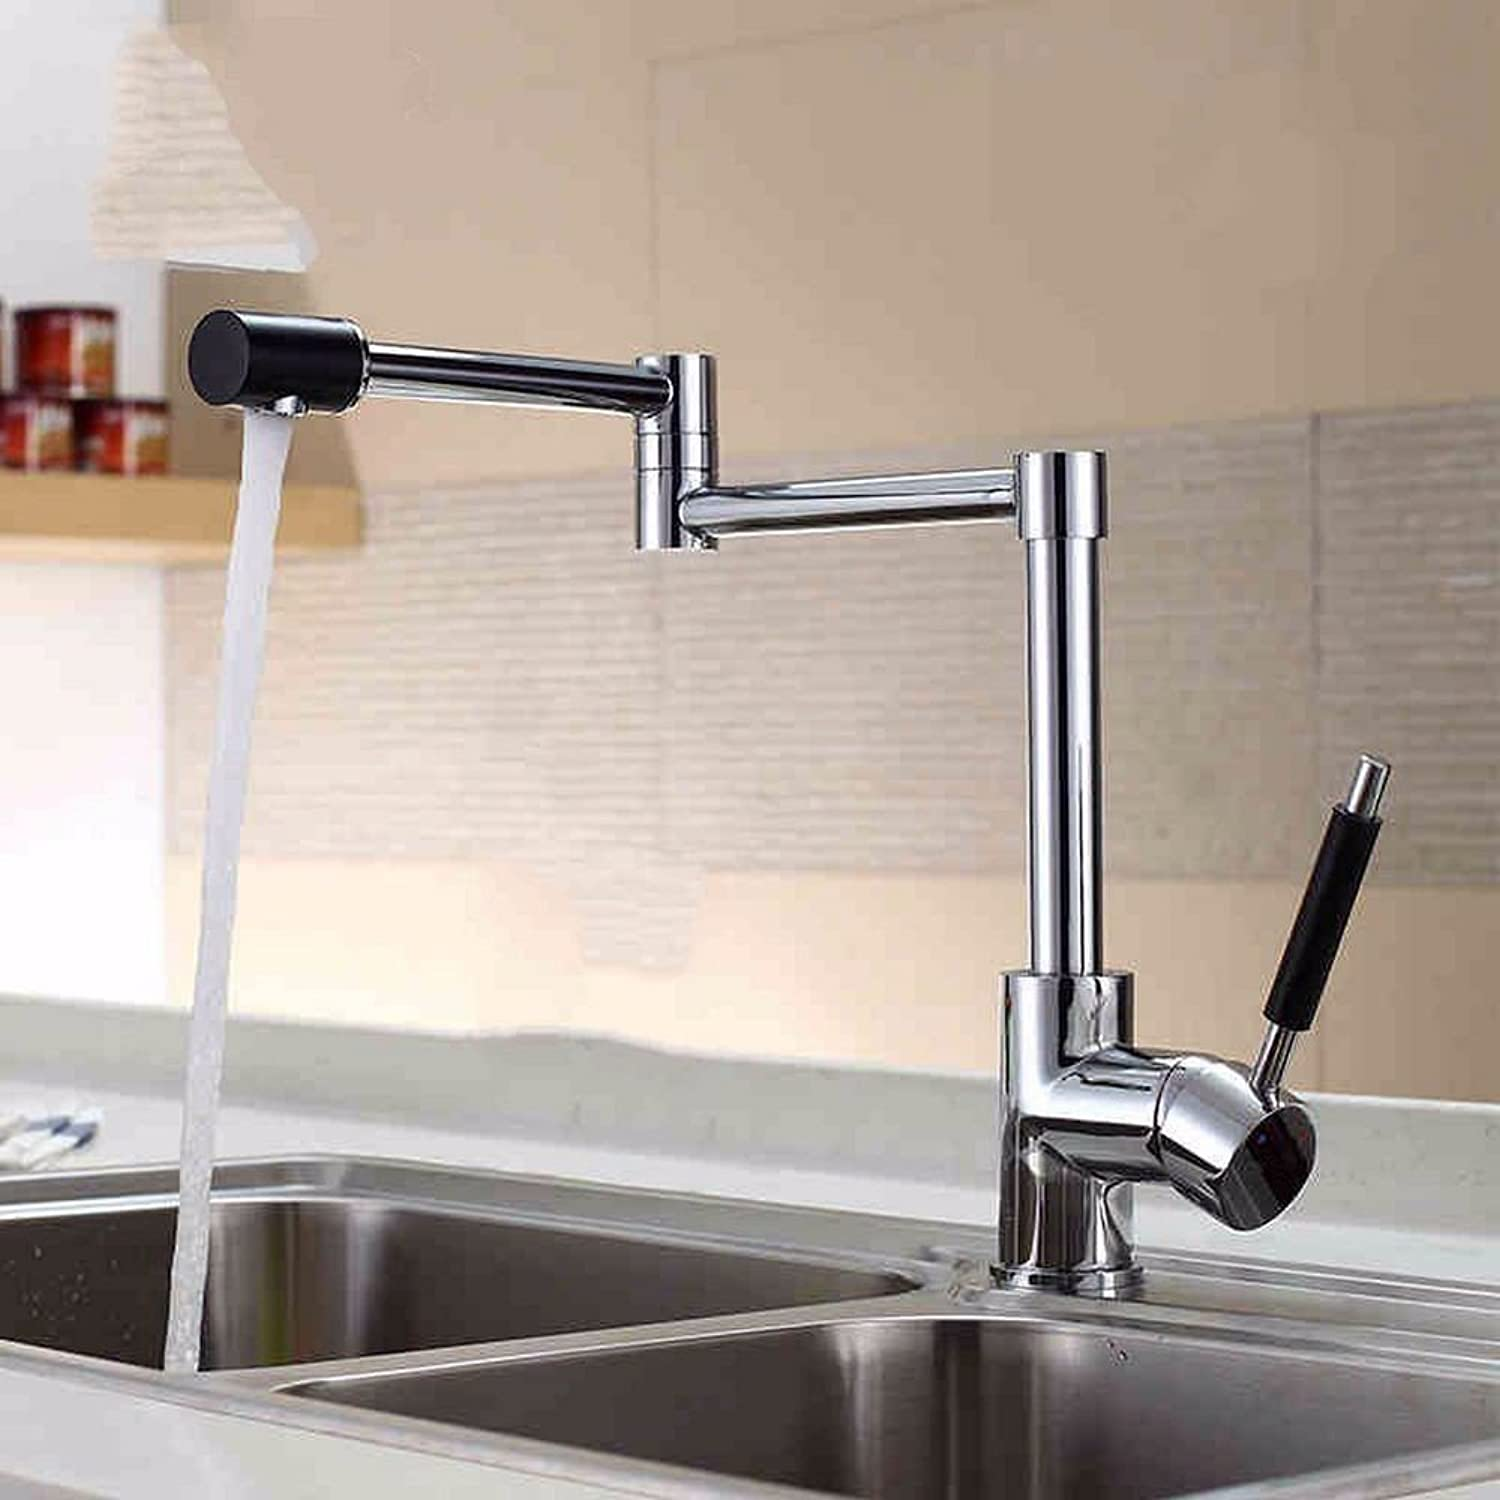 Rmckuva Kitchen Sink Taps Kitchen Faucet Modern redary Spout Mouth Kitchen Sink And Sink Single Handle Mixer Chrome-Plated Folding Brass Mixer